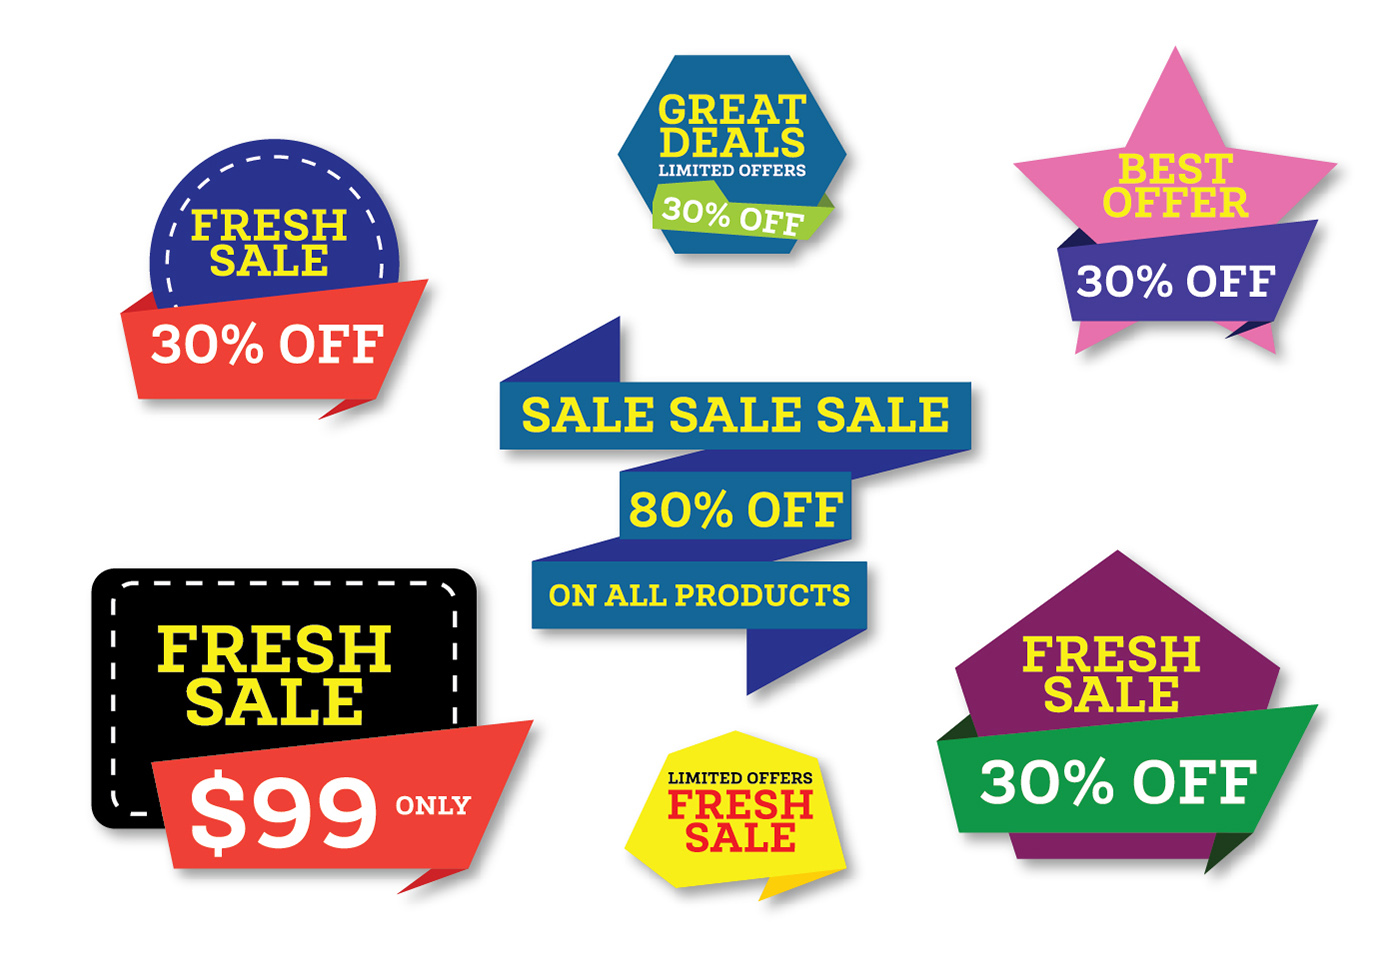 Store Banne Promotion Promotional Web Banners Download Free Vector Art Stock